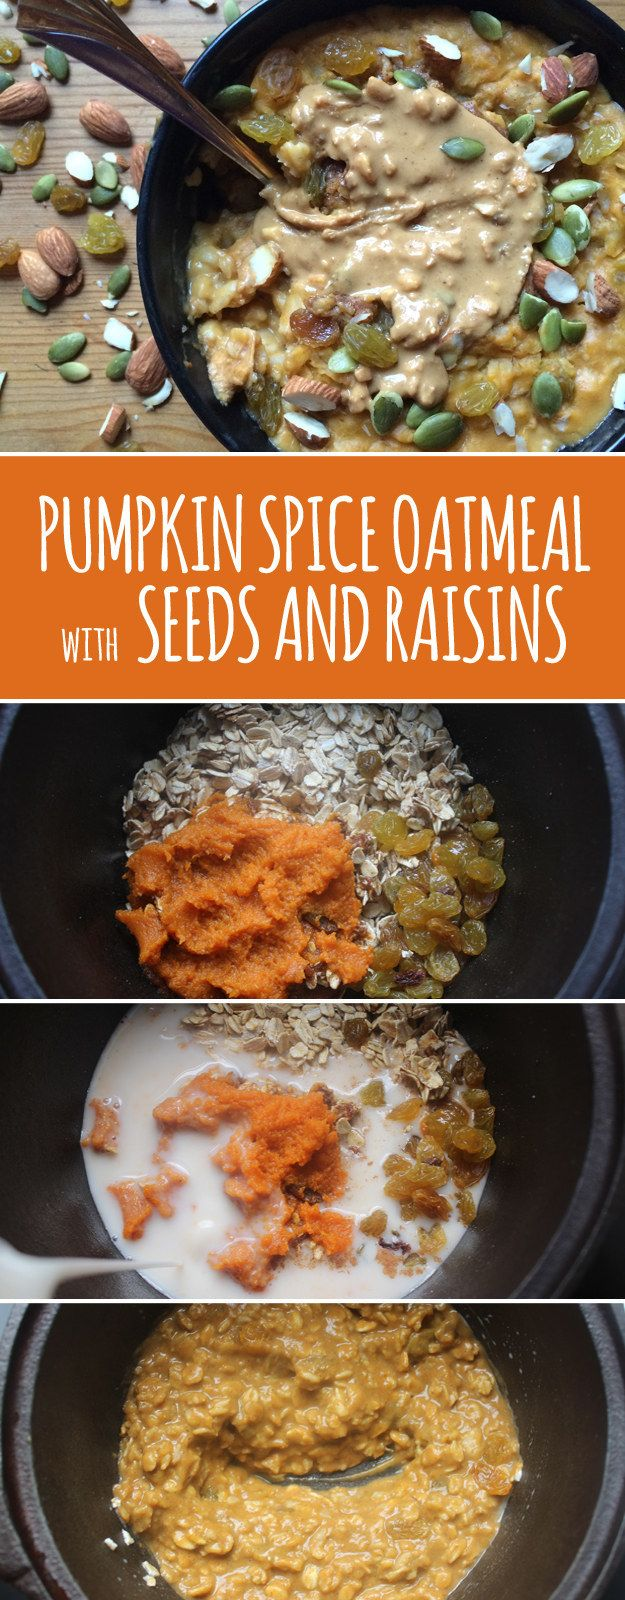 Stir in canned pumpkin to add flavor and a little extra volume. | 13 Insanely Clever Oatmeal Tricks You Need To Try